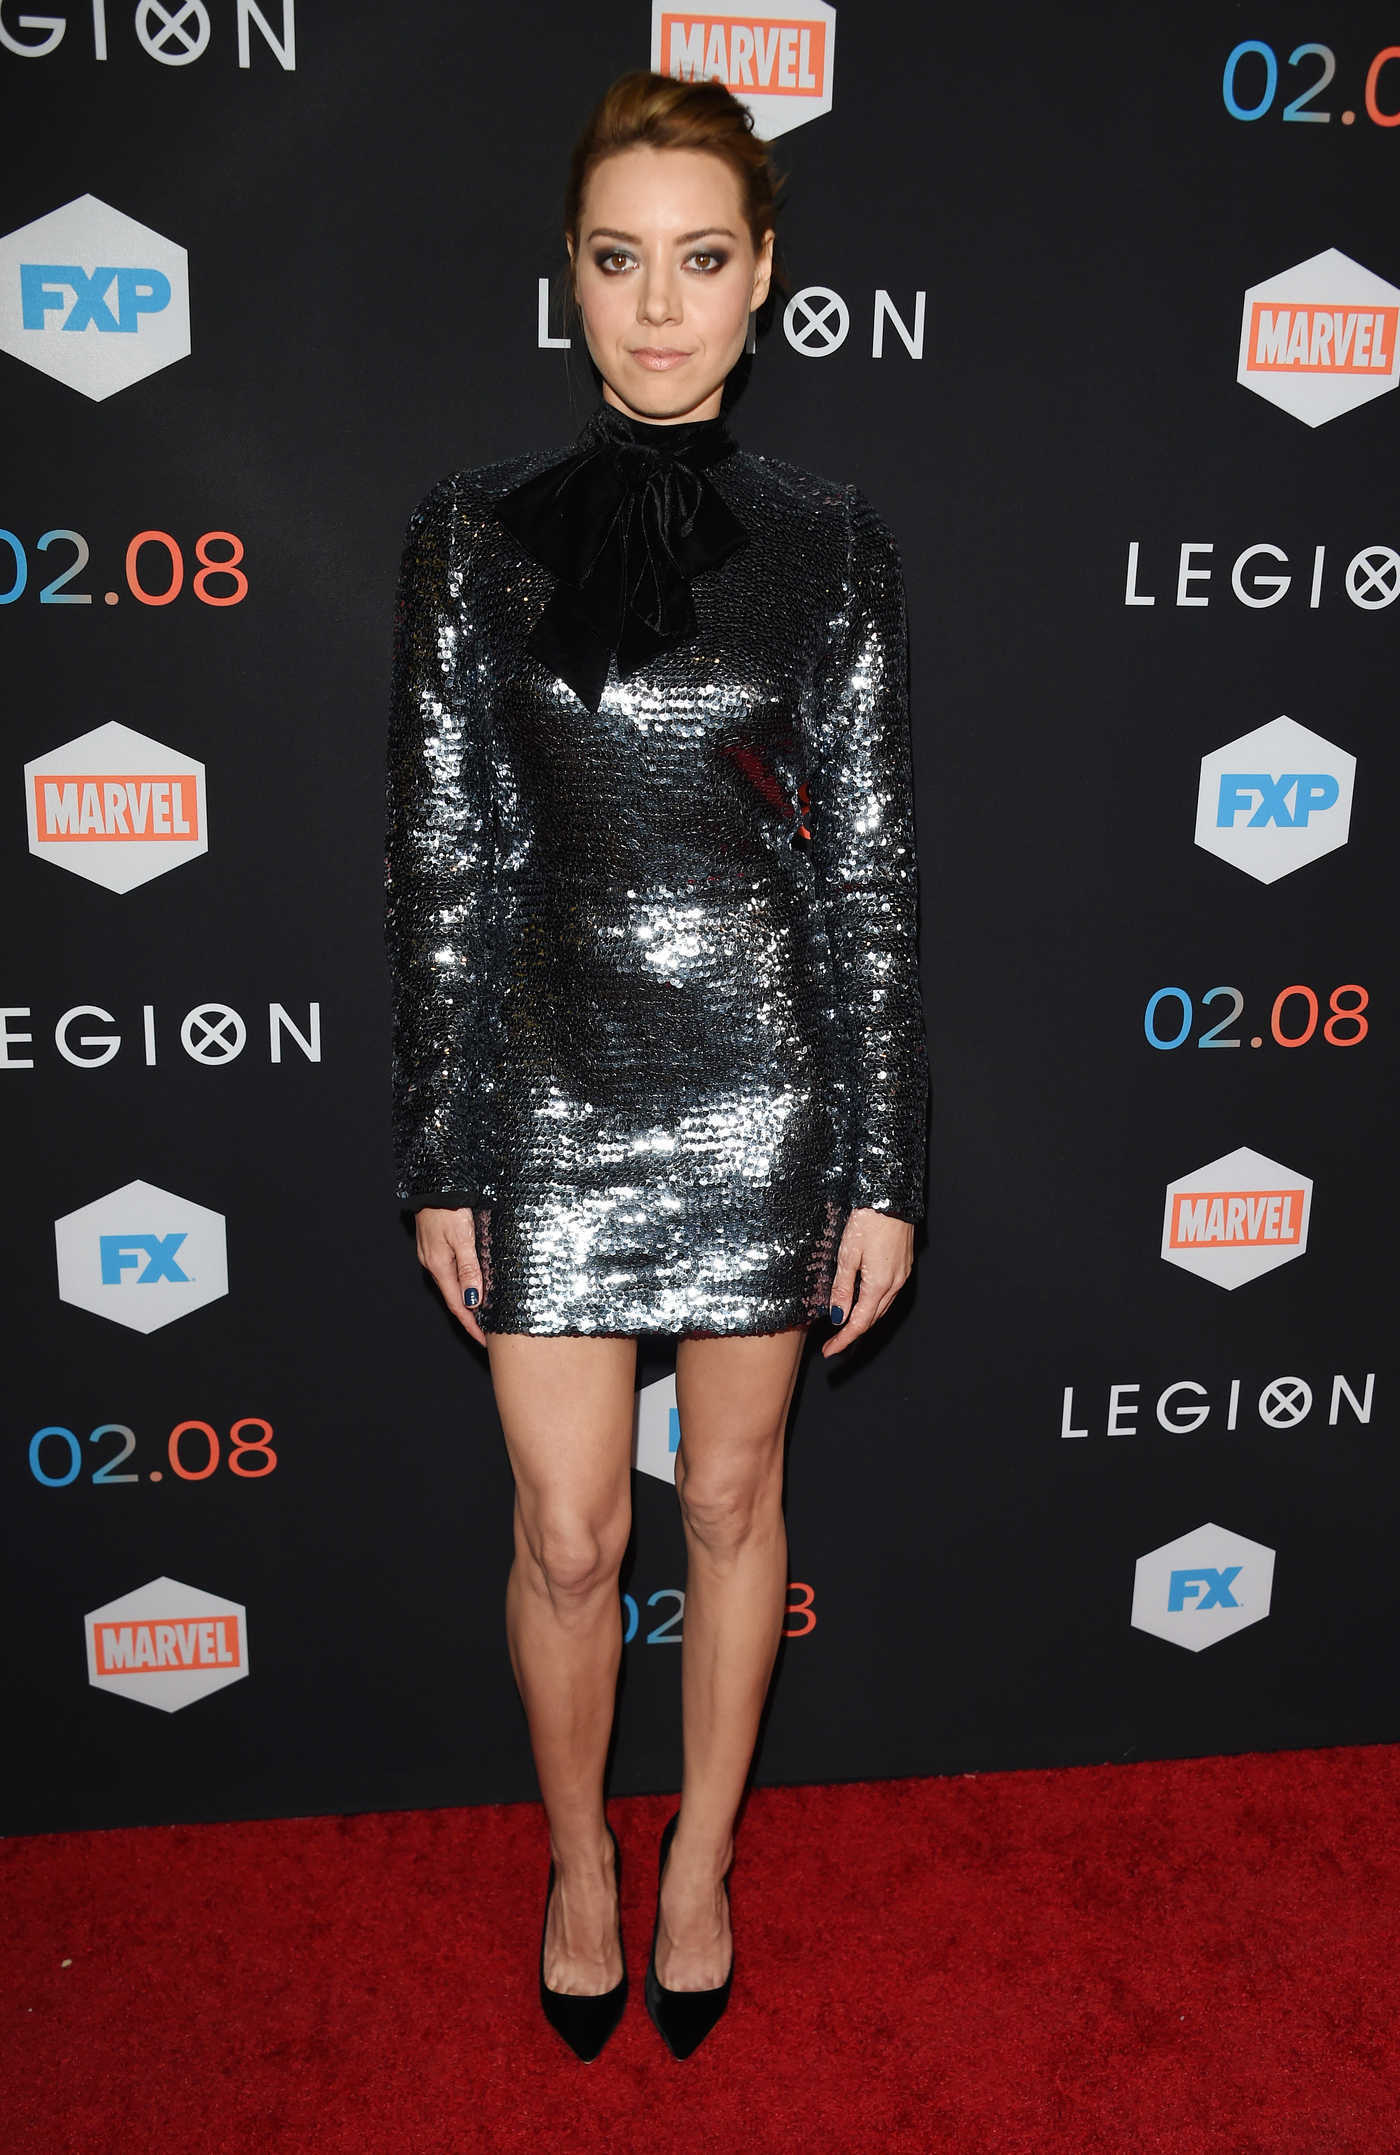 Aubrey Plaza at the Legion TV Series Premiere in Los Angeles 01/26/2017